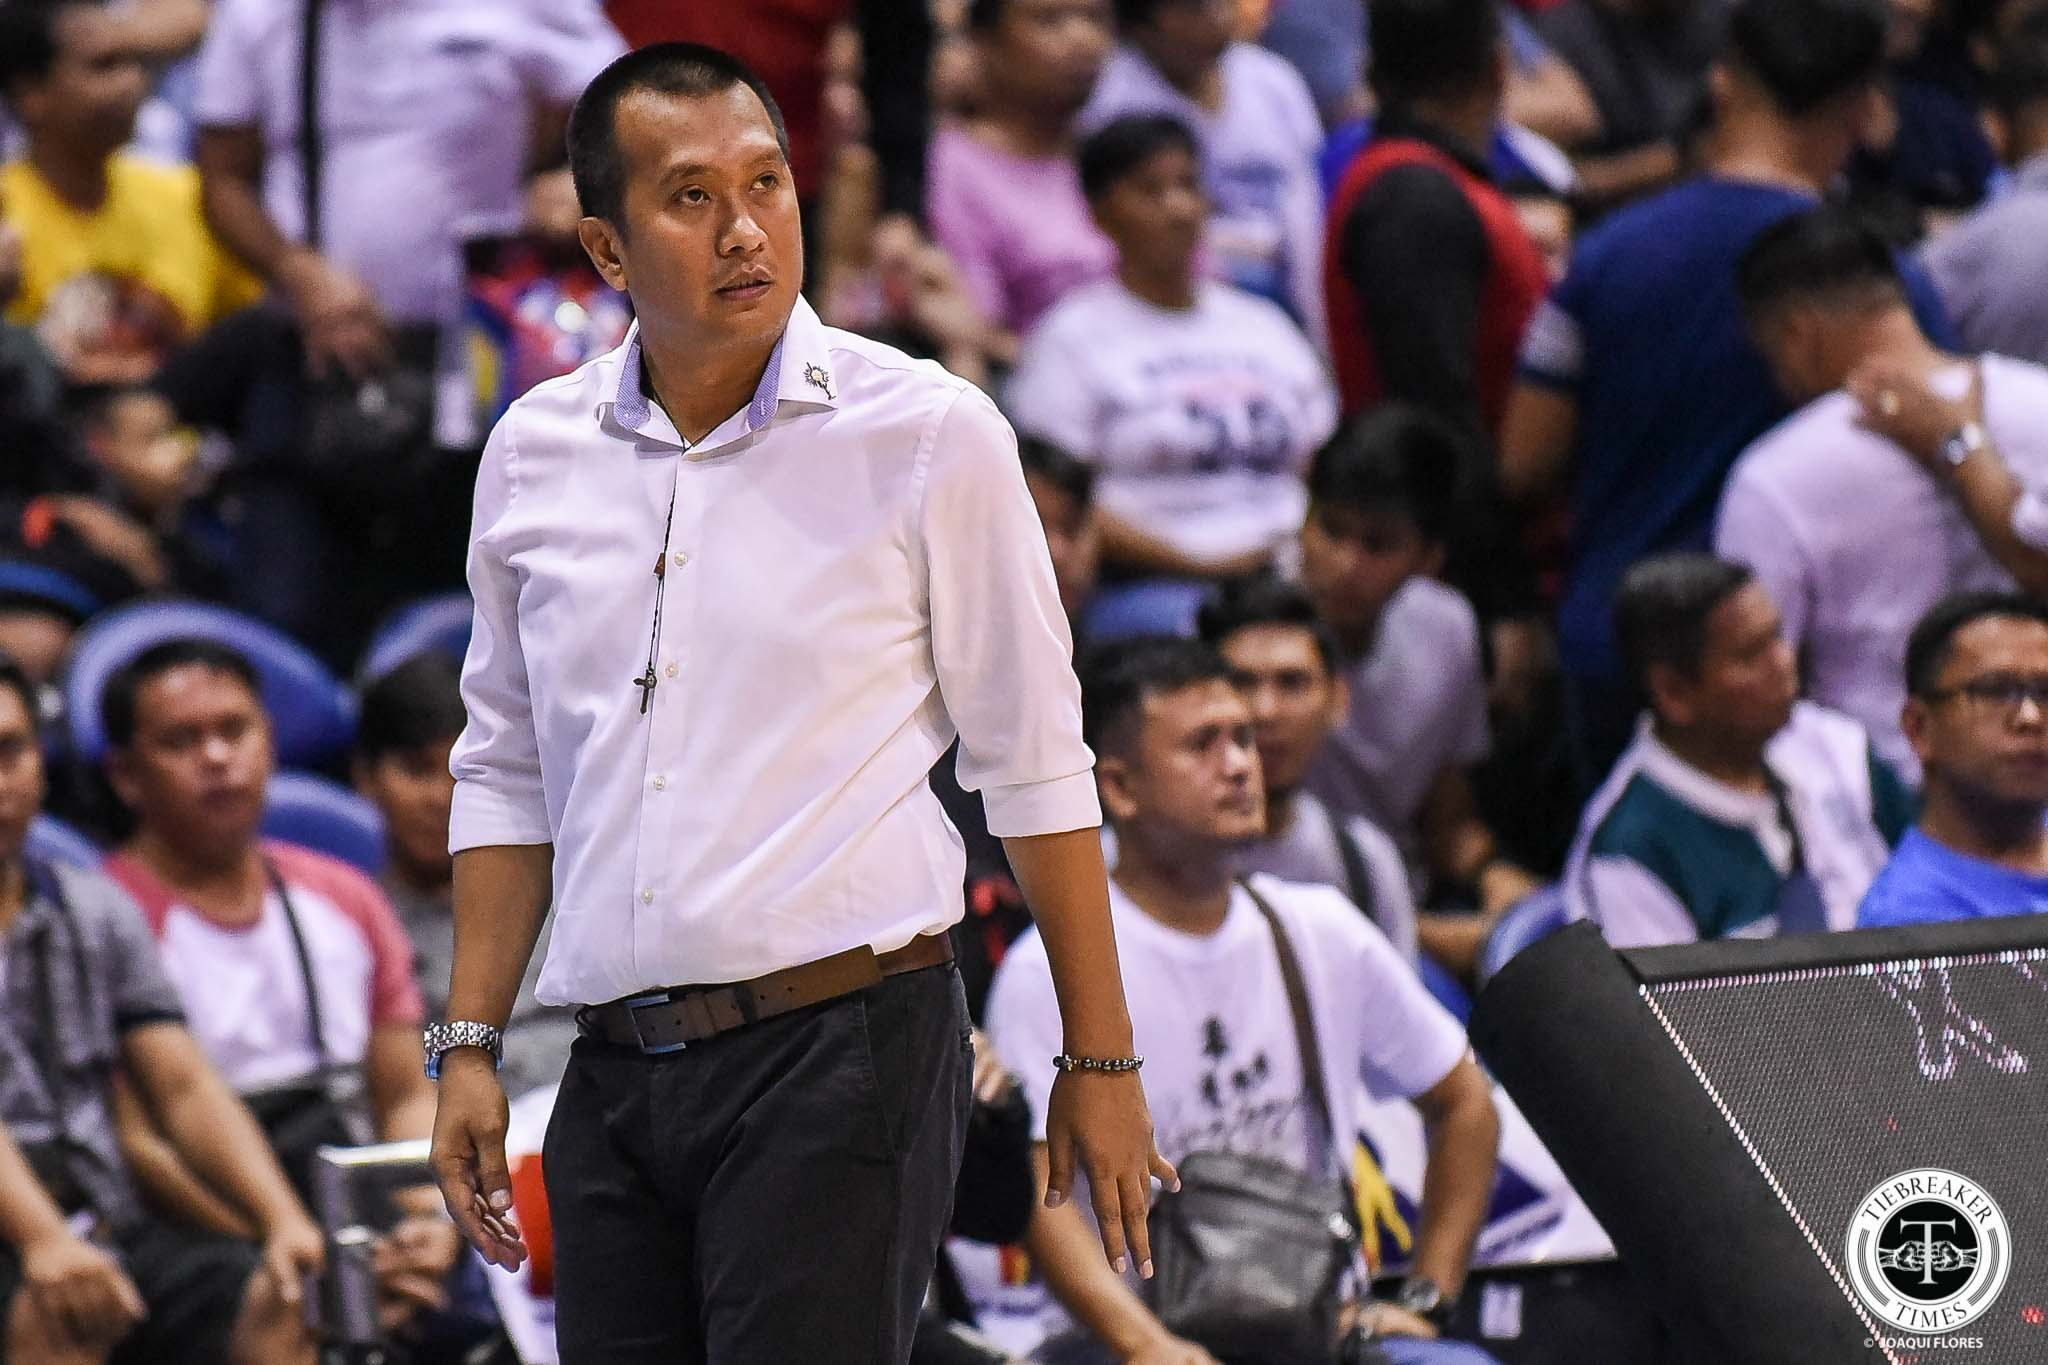 Tiebreaker Times Chito Victolero not closing doors on more Magnolia moves Basketball News PBA  PBA Season 44 Magnolia Hotshots Chito Victolero 2019 PBA Governors Cup